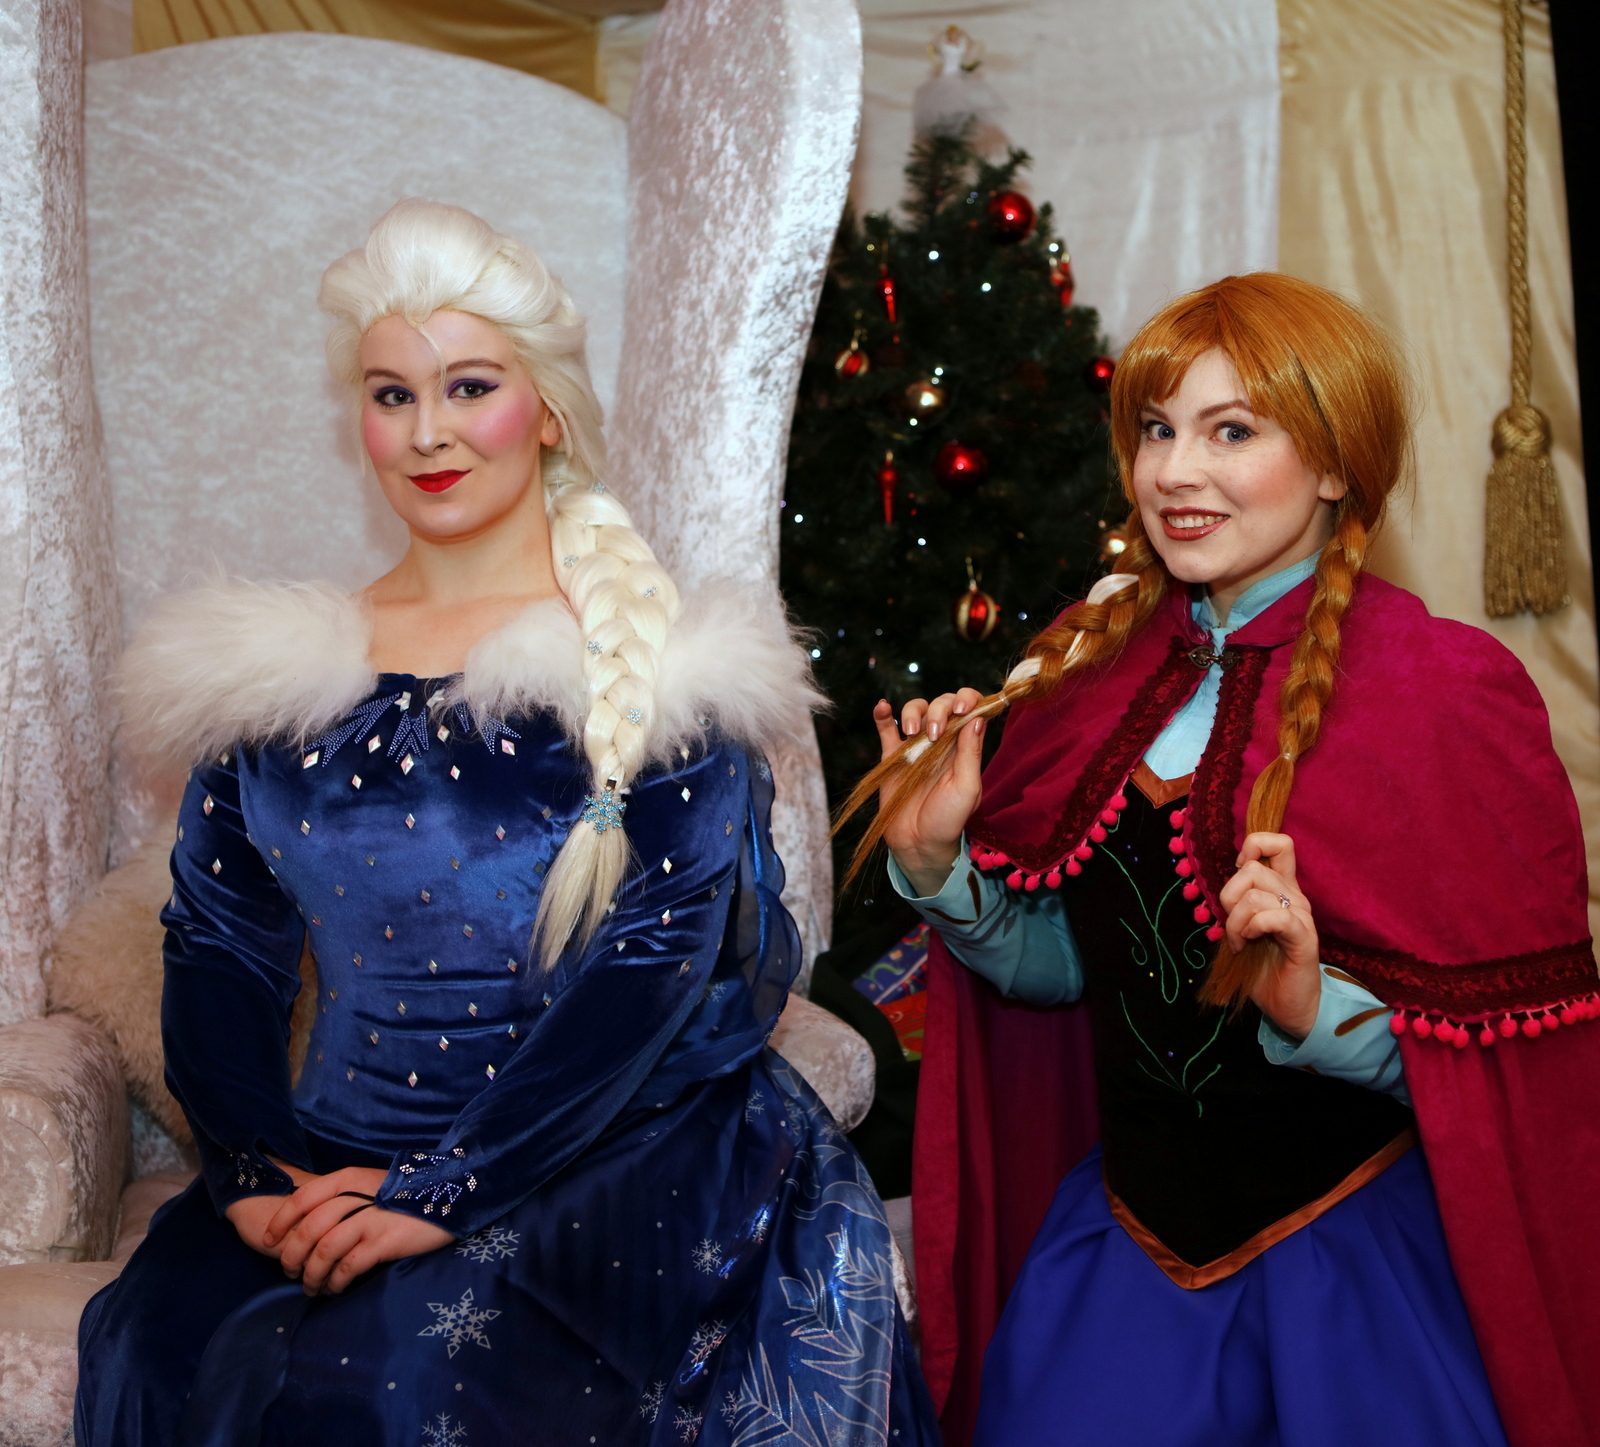 Aspergers, autism, Autism All Stars, autism awareness, characters, charity, cinema, Cineworld, cosplay, diversity, events, sussex, crawley, west sussex, Frozen 2, Princesses